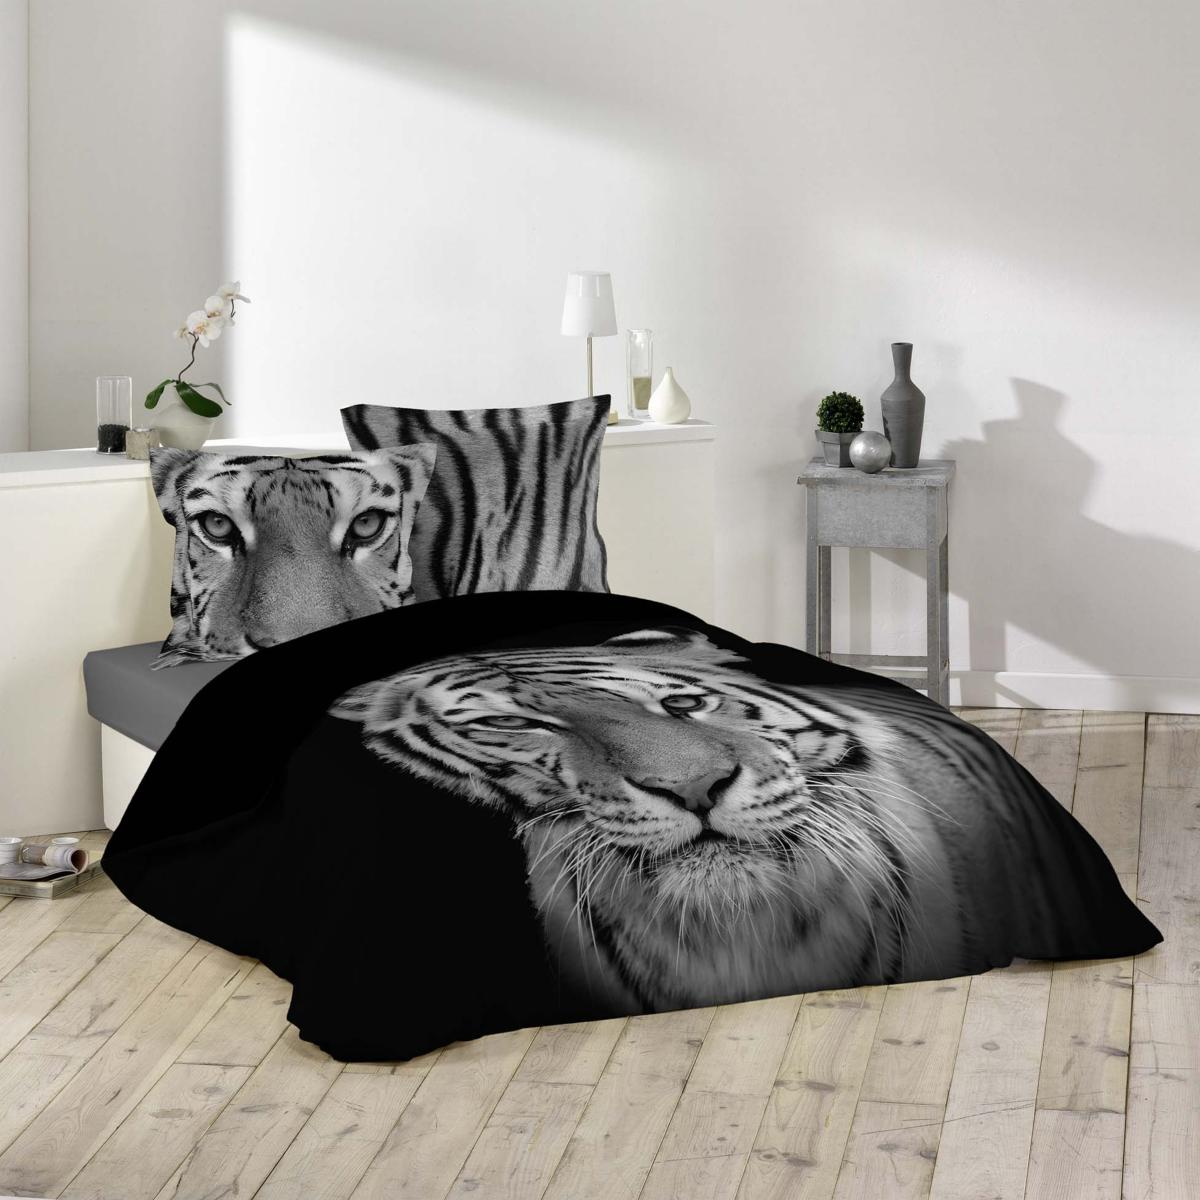 parure housse de couette tigre noir et blanc 100 coton avec dessin plac j k markets. Black Bedroom Furniture Sets. Home Design Ideas